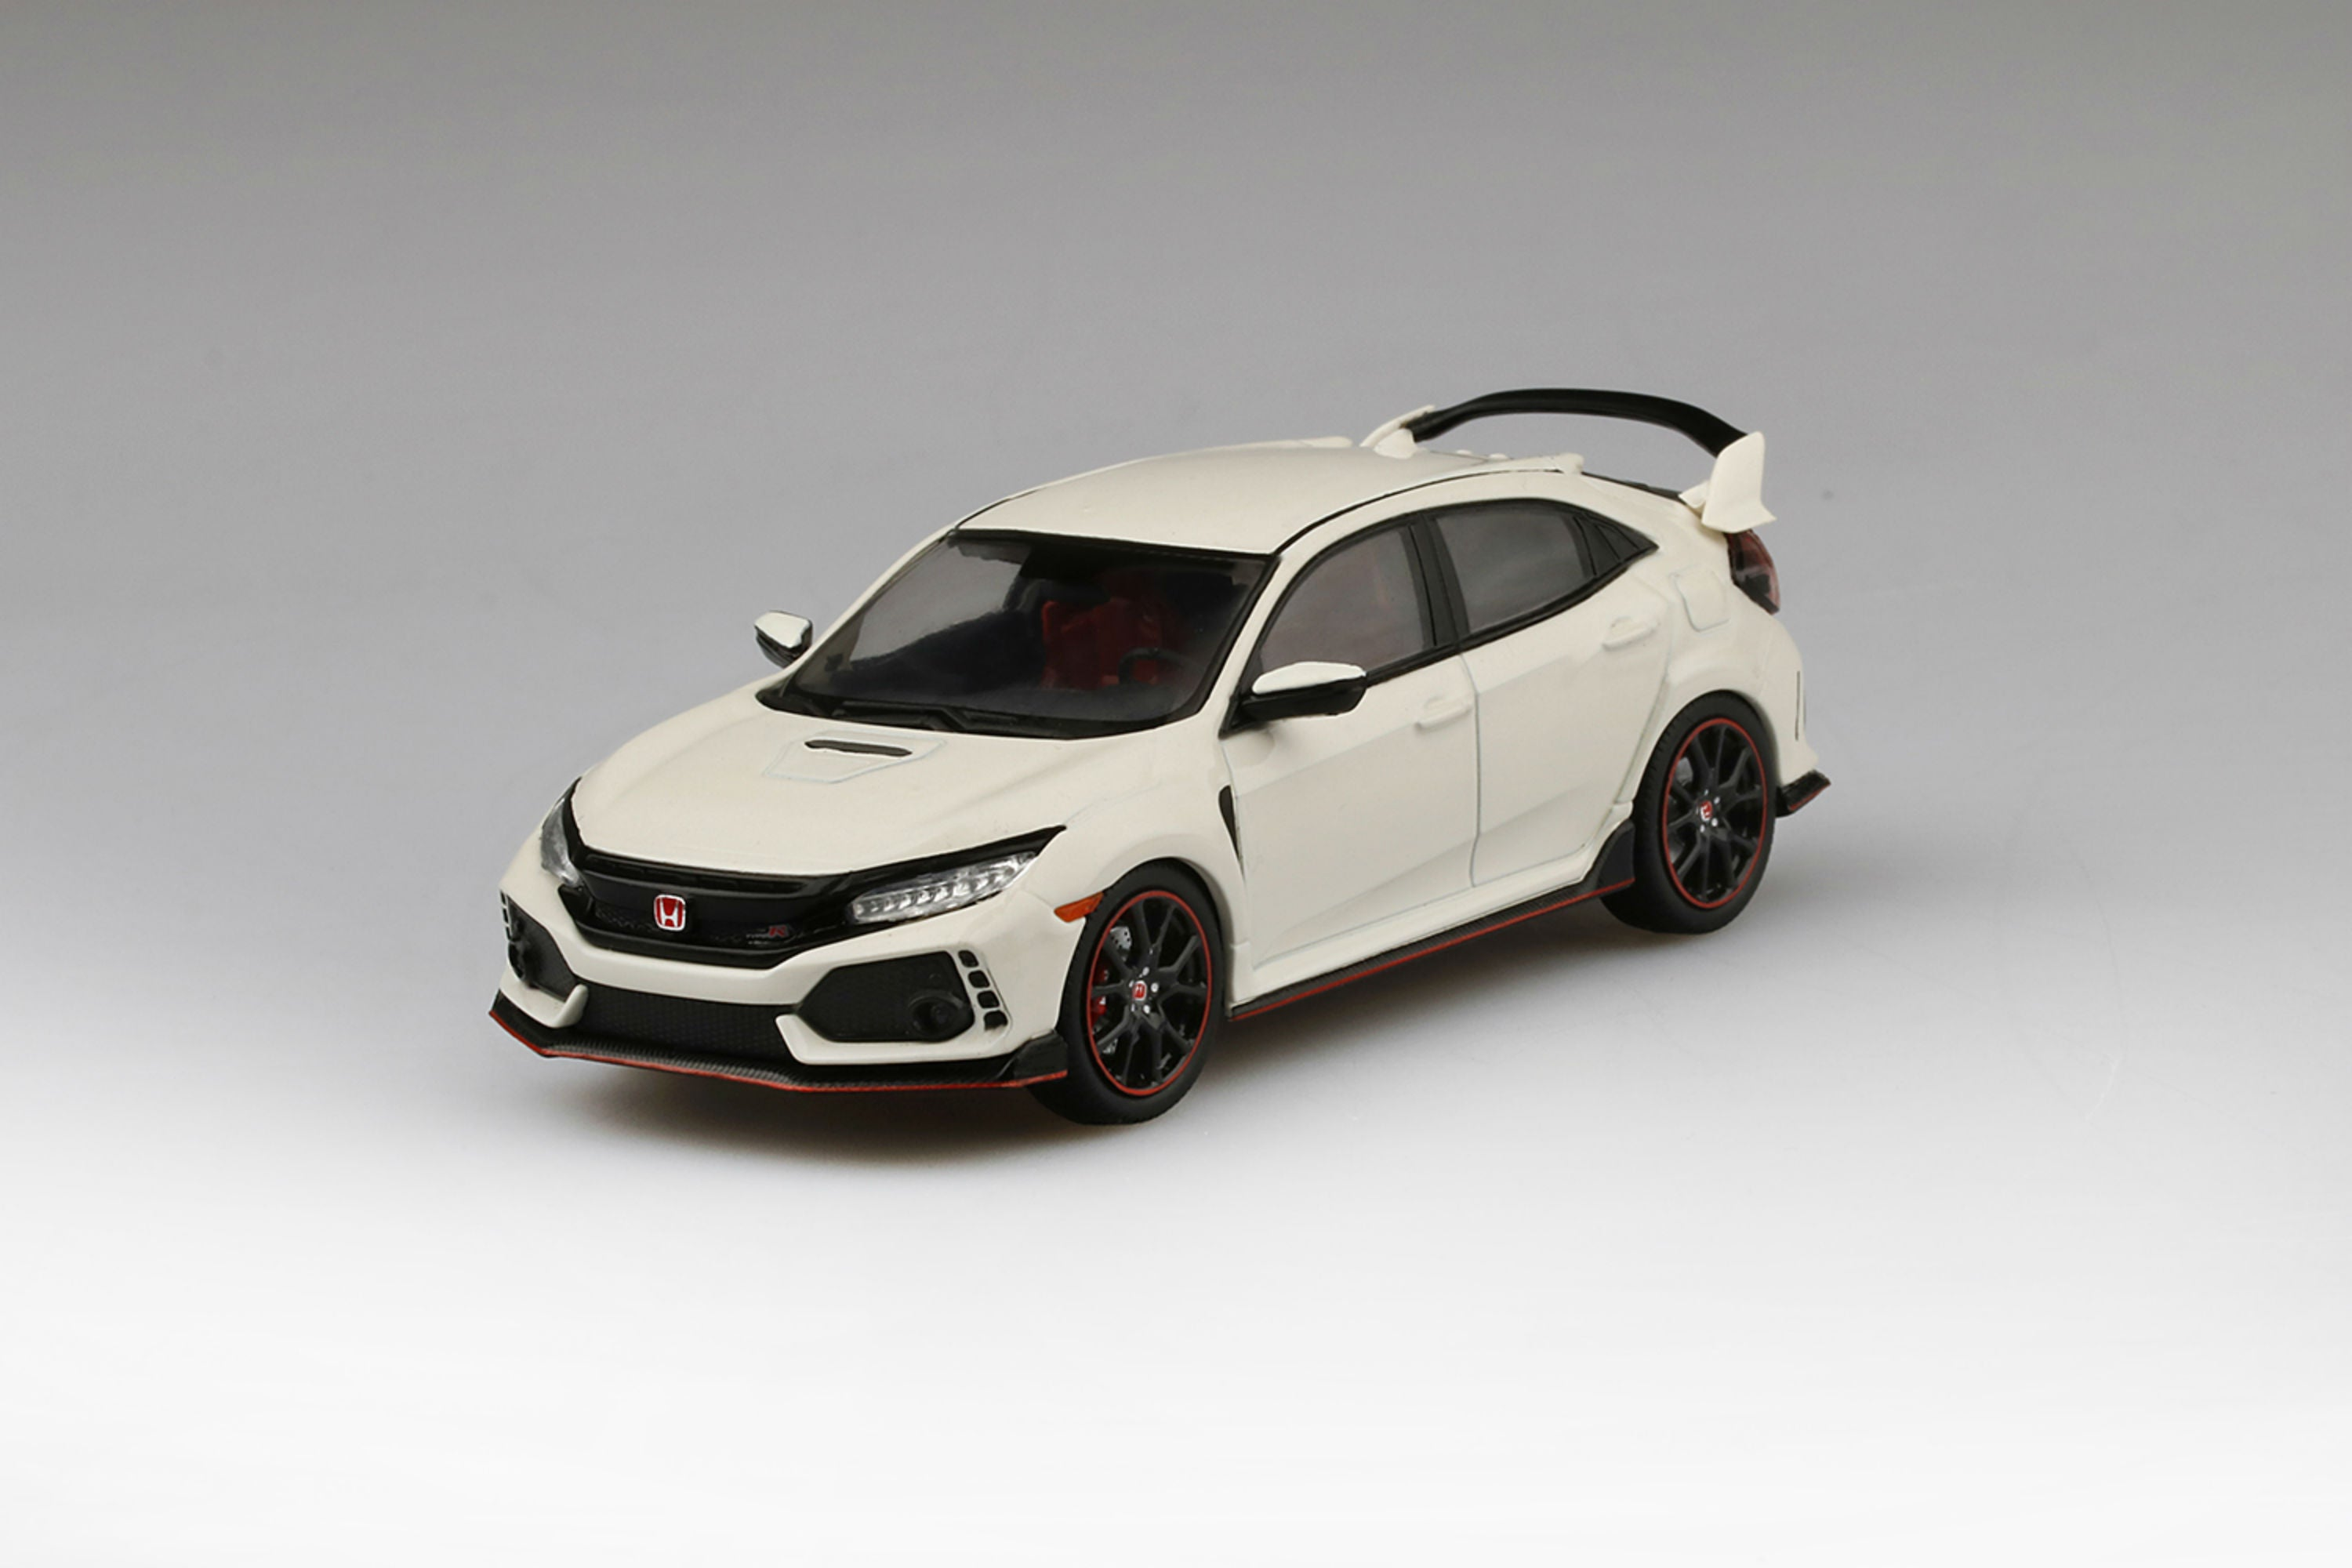 Honda Civic Type R (2017) | 1:43 Scale Diecast Model Car by TSM | Front Quarter